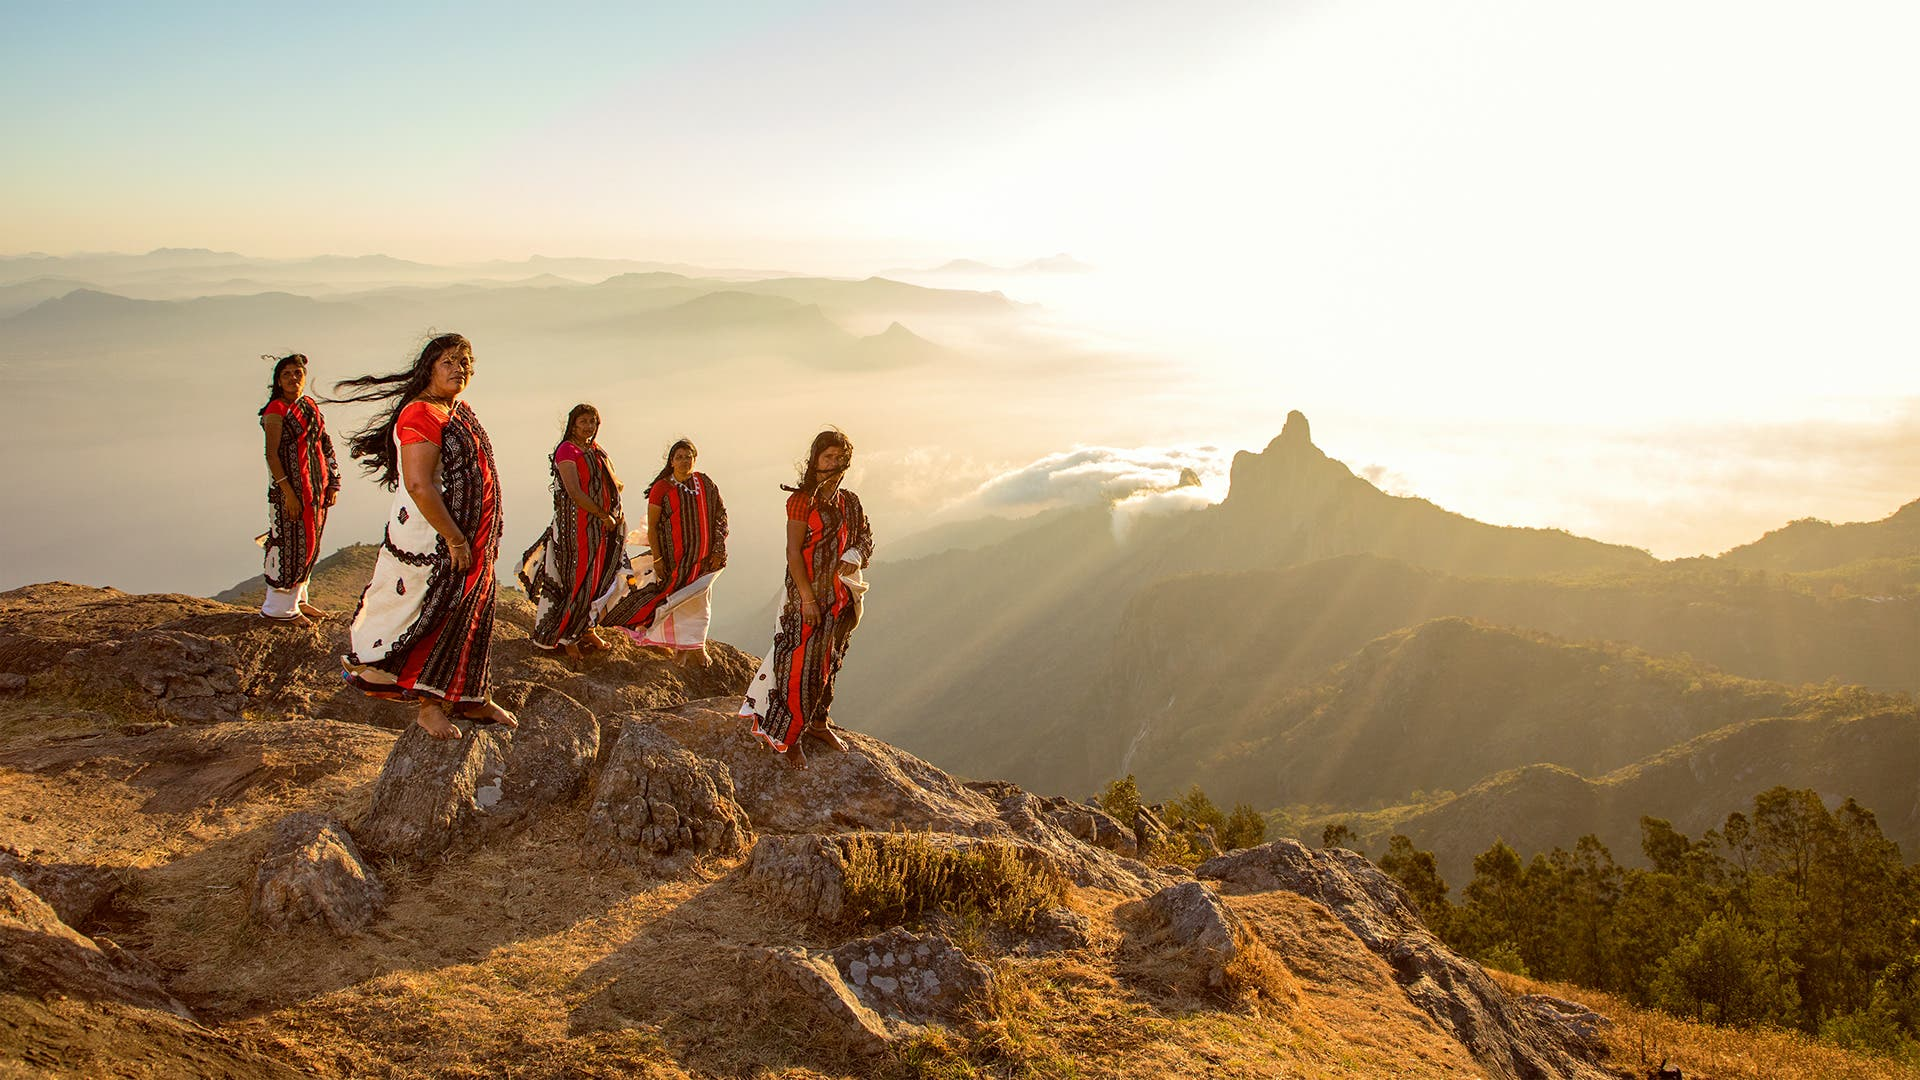 Shawn Jacob Stephen Introduces Us to the Toda Tribe of the Nilgiris